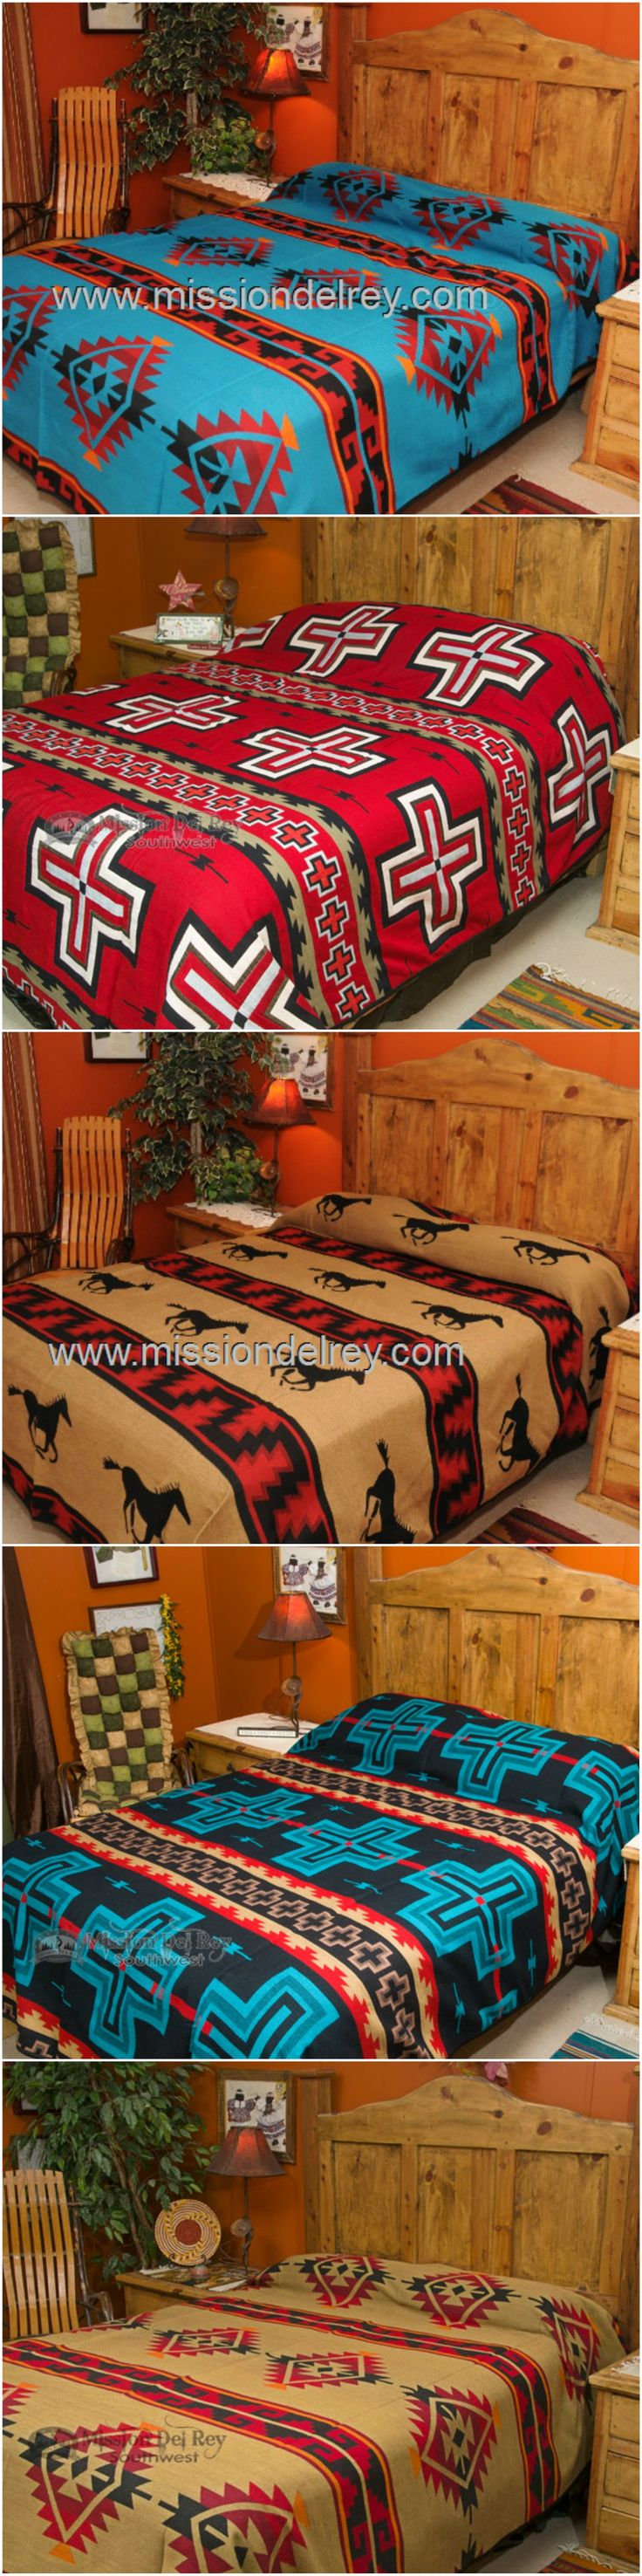 Western bedspreads are the perfect choice for enhancing rustic, cowboy, lodge, cabin, or southwest style decor.  Bring authentic western style to life in your home with a reversible bedspread from our western bedding collection. See all of our western and southwestern bedspreads, and sign up for our newsletter to receive exclusive discounts and coupons at http://www.missiondelrey.com/southwestern-bedspreads/